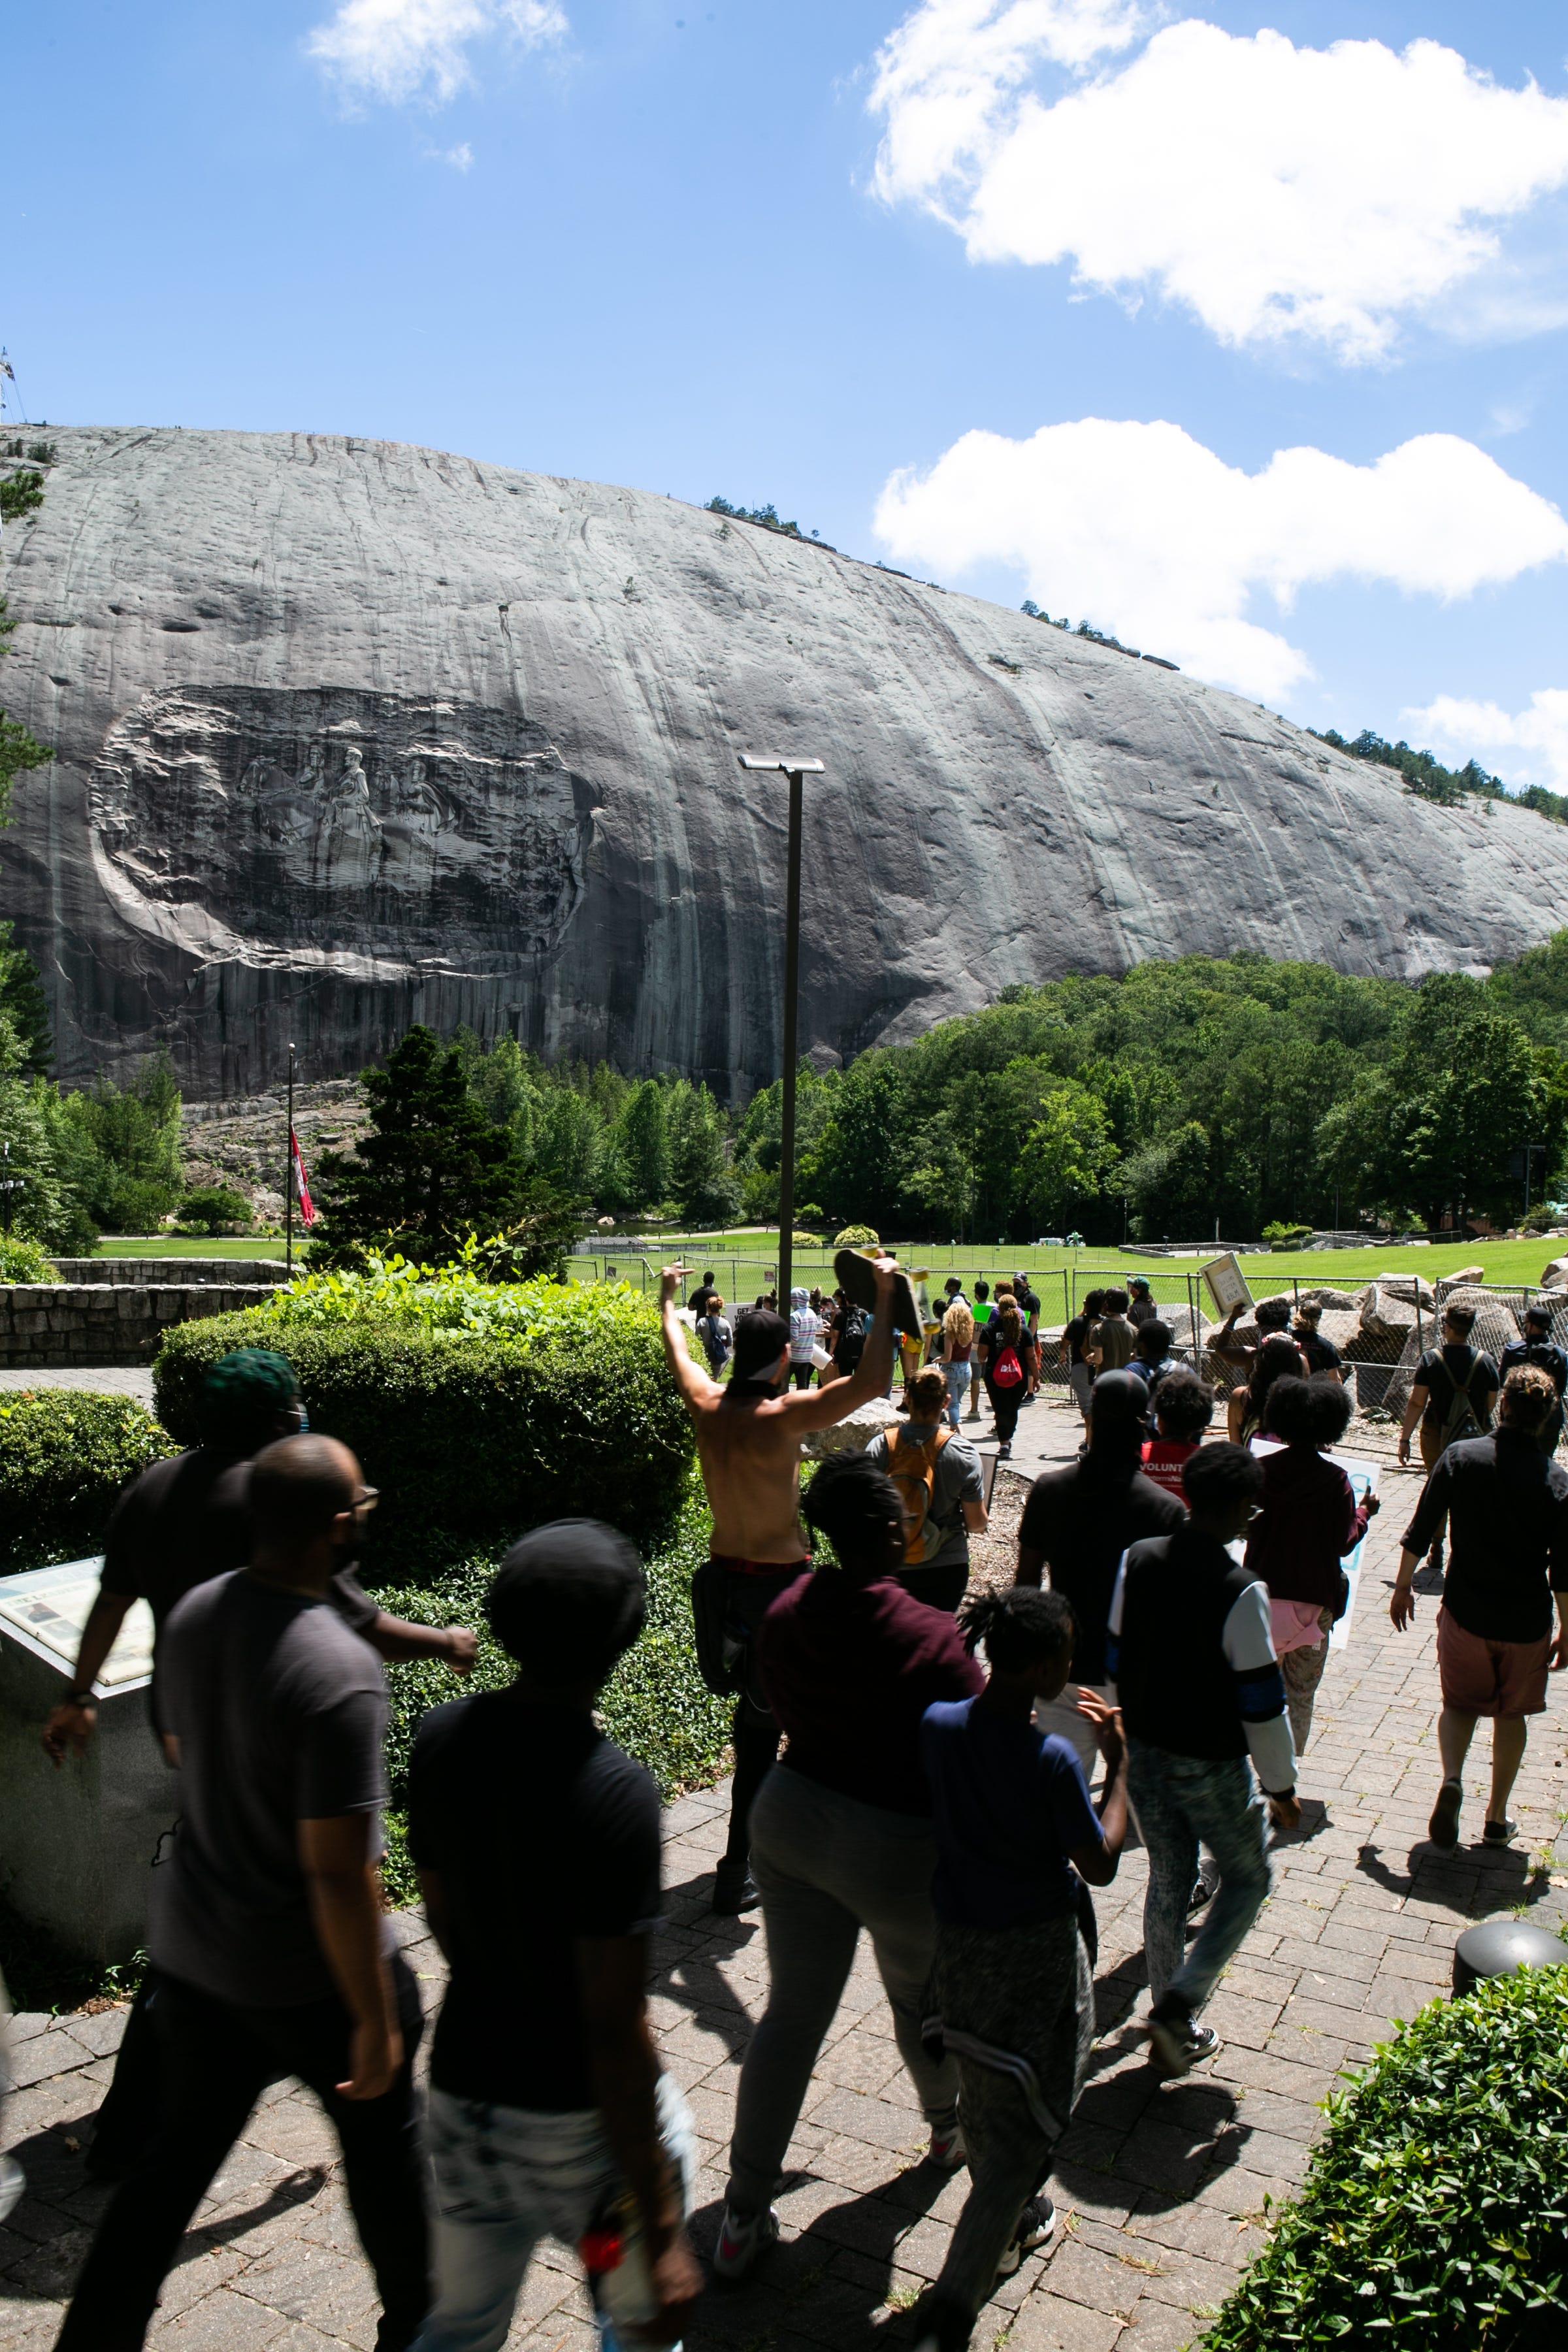 STONE MOUNTAIN, GA - JUNE 16: Black Lives Matter protesters lead march in Stone Mountain Park to the Confederate carving etched into the stone side of the mountain on June 16, 2020 in Stone Mountain, Georgia. The march is to protest confederate monuments and recent police shootings.  (Photo by Jessica McGowan/Getty Images)